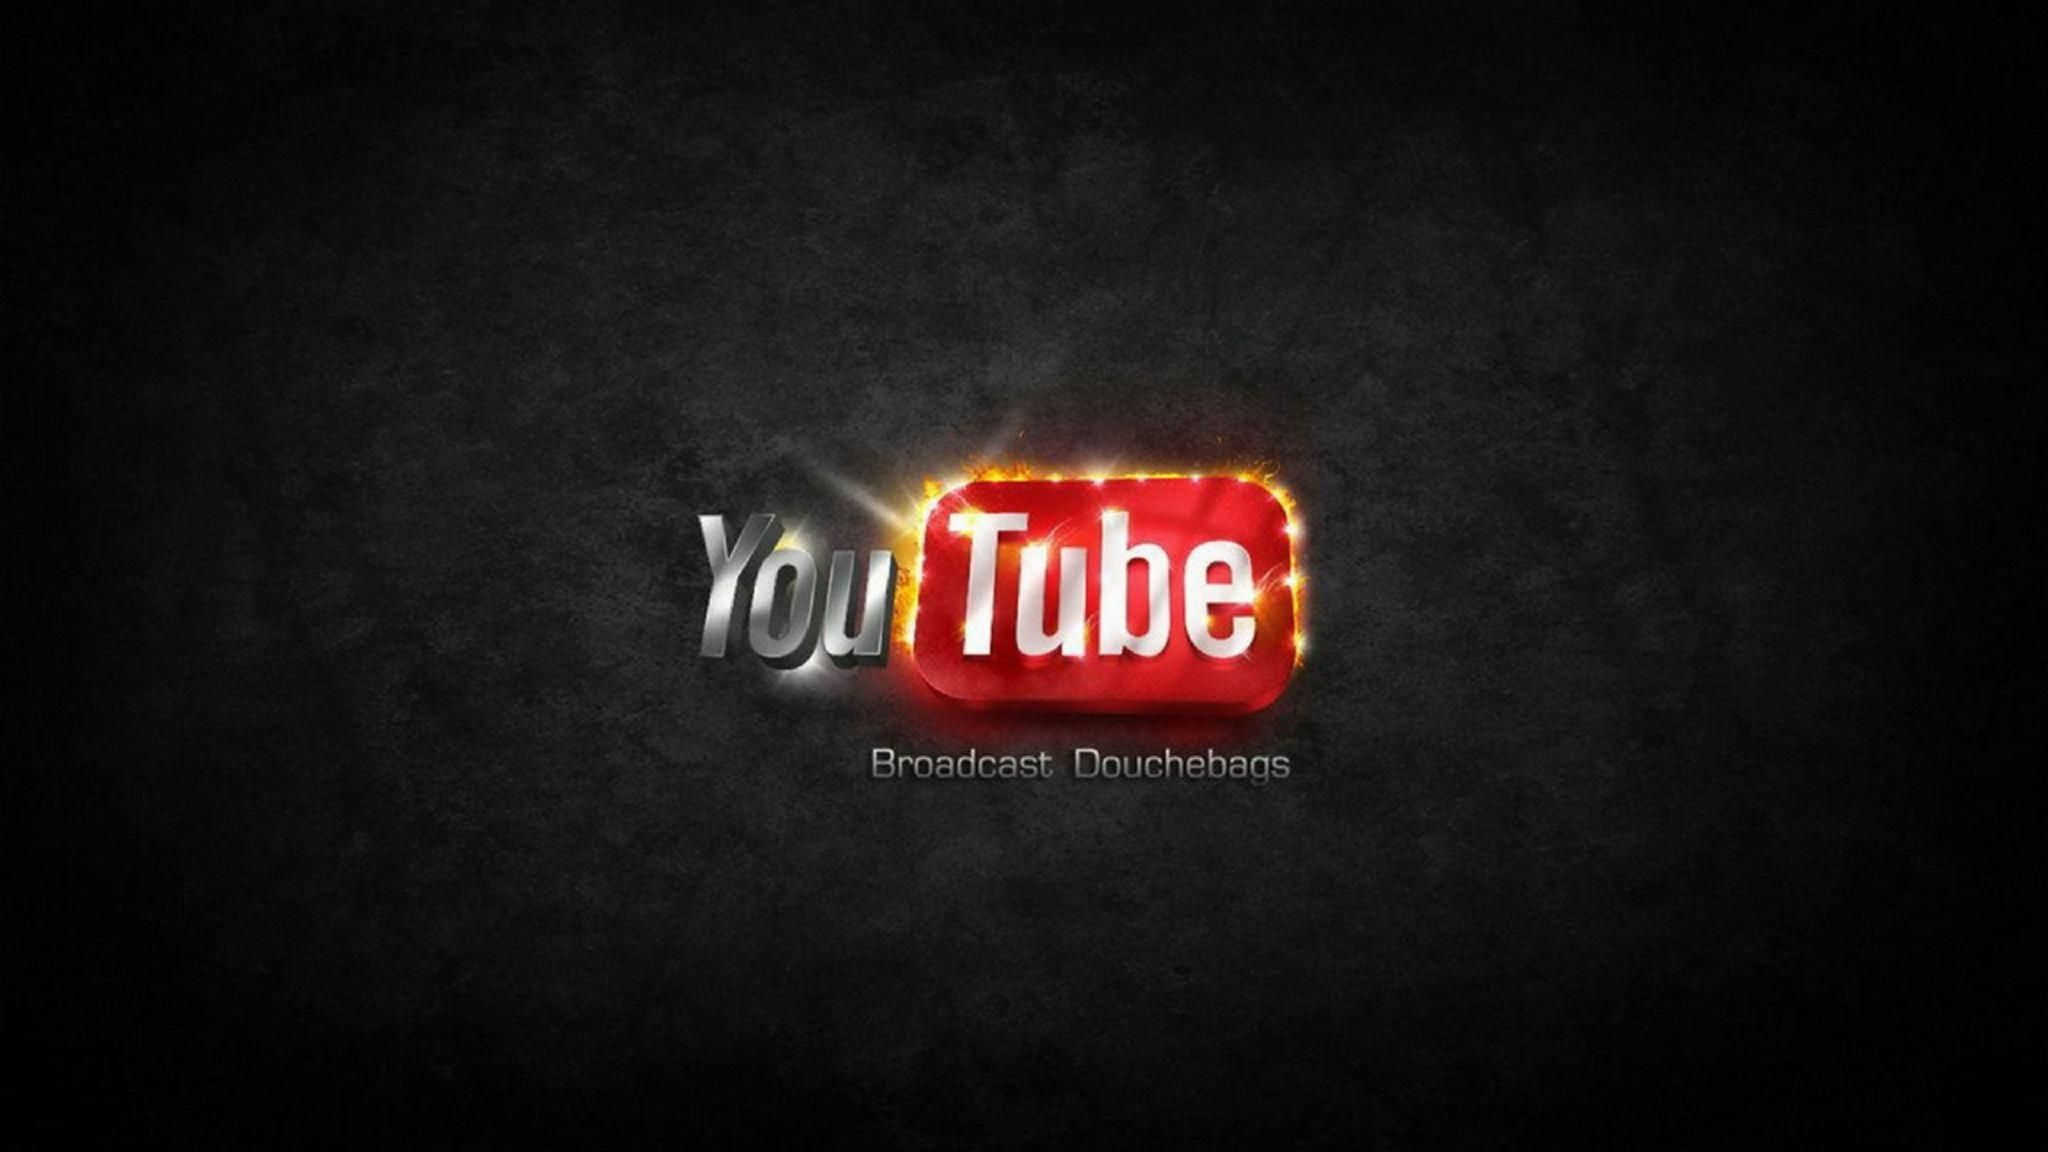 What would your YouTube channel name be? Youtube logo